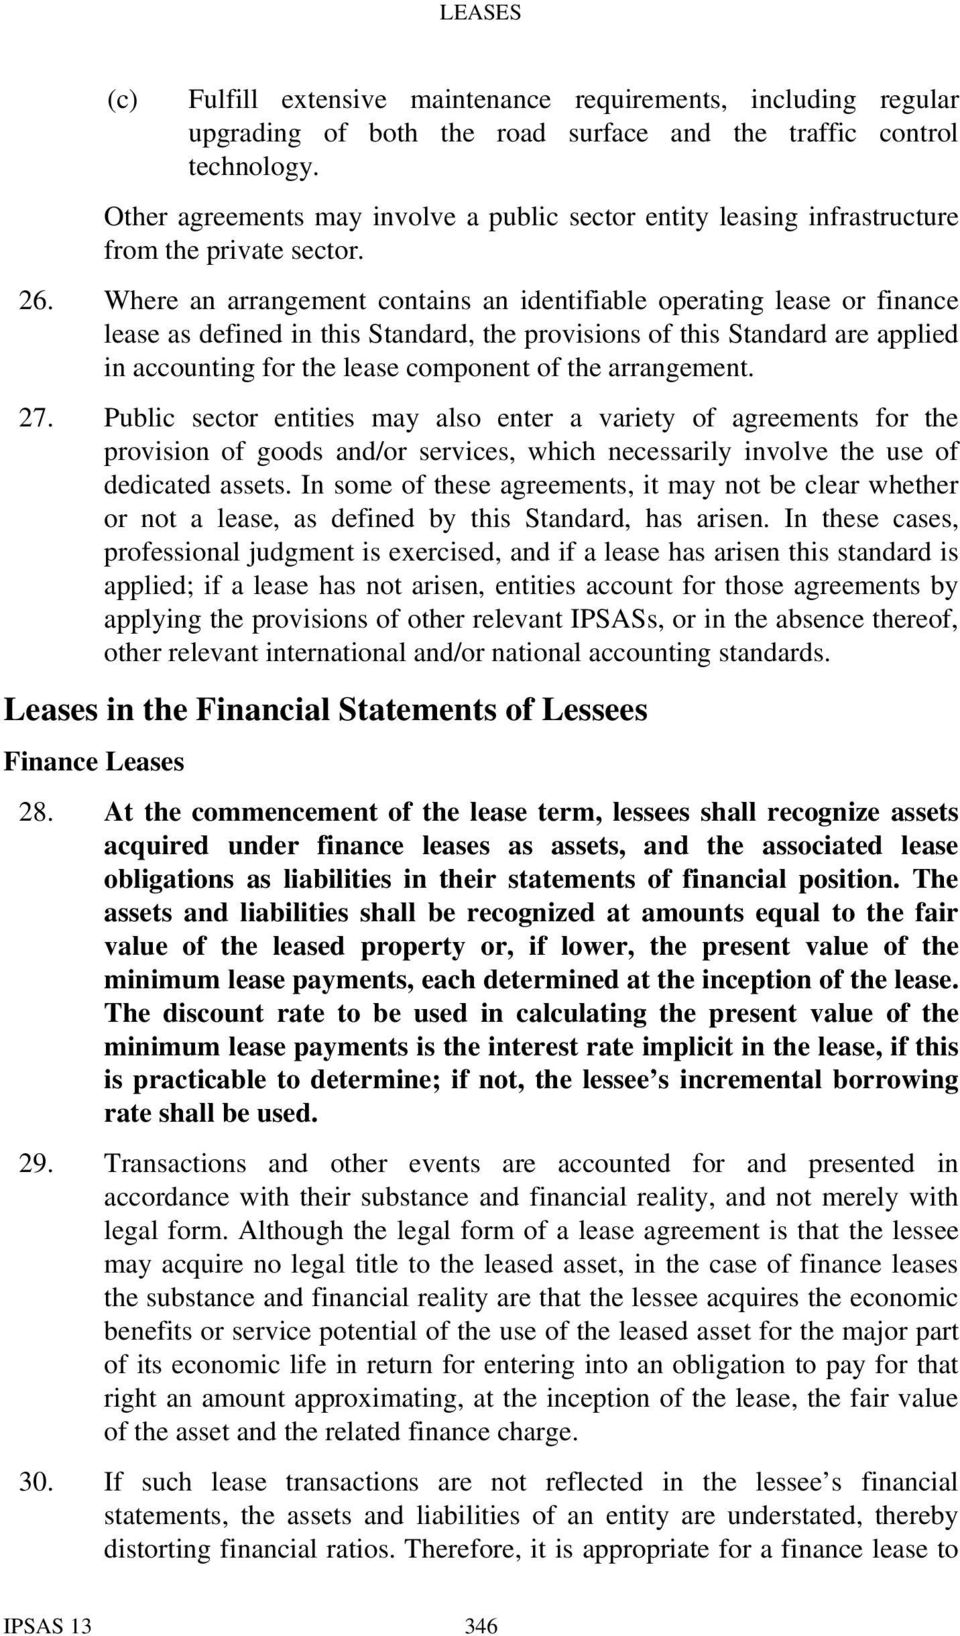 Where an arrangement contains an identifiable operating lease or finance lease as defined in this Standard, the provisions of this Standard are applied in accounting for the lease component of the